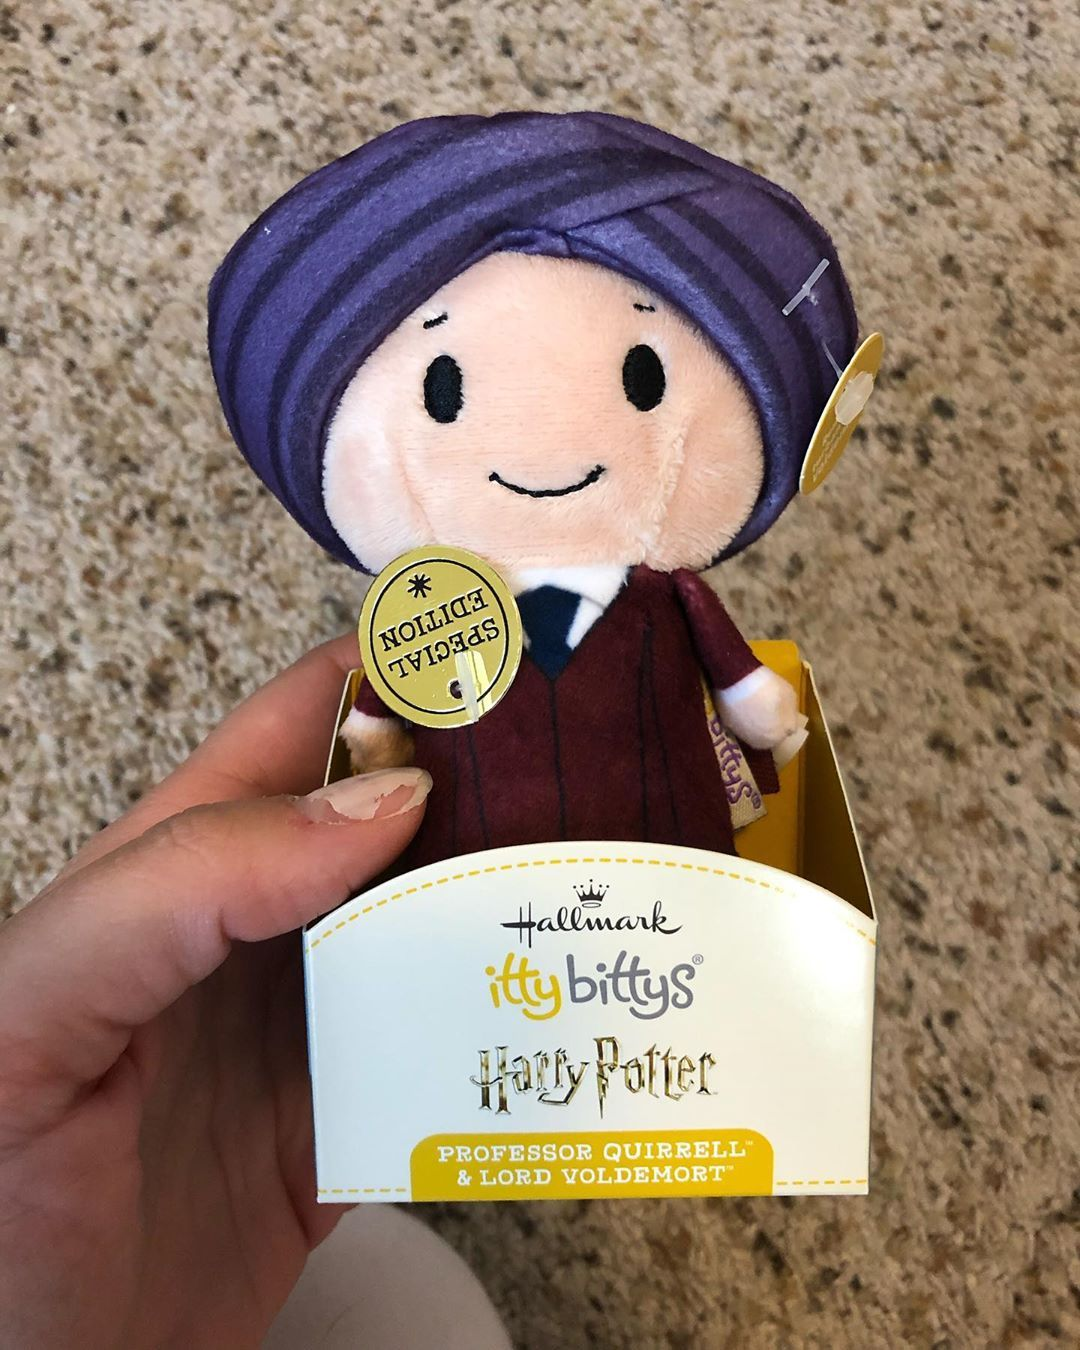 Pppppooor Ppppprofessor Qqqqqquuuirrell The Best Part About This Itty Bitty Is That When You Take Off The Turban Voledemort Is Revel Itty Bitty Itty Bitty